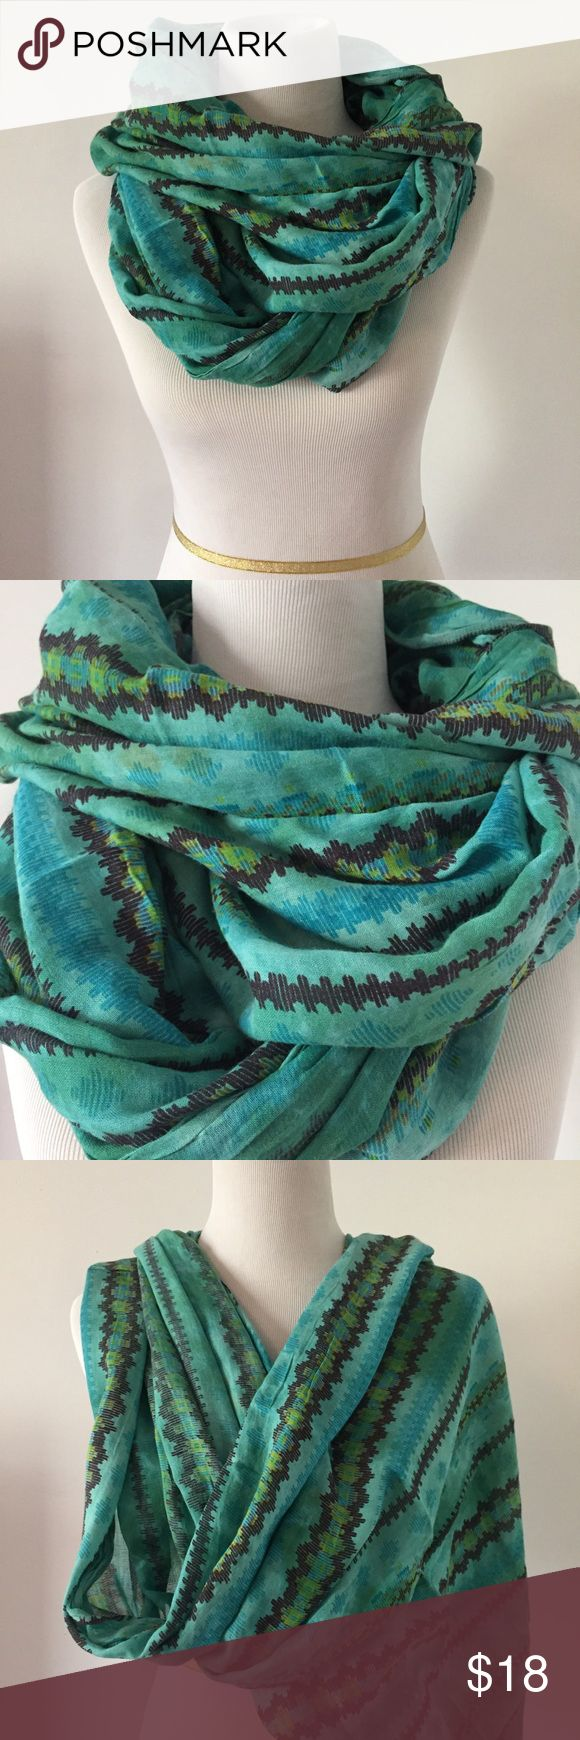 Urban Outfitters Turquoise Infinity Scarf Turquoise Infinity Scarf by Silence and Noise at Urban Outfitters. In excellent condition. Finished with beautiful Aztec Tribal Print Detailing. No visible signs of wear or use. No rips, stains, or fading. Made out of a light weight soft breathable fabric. An awesome accent for any outfit. Please feel free to ask any questions :) Urban Outfitters Accessories Scarves & Wraps